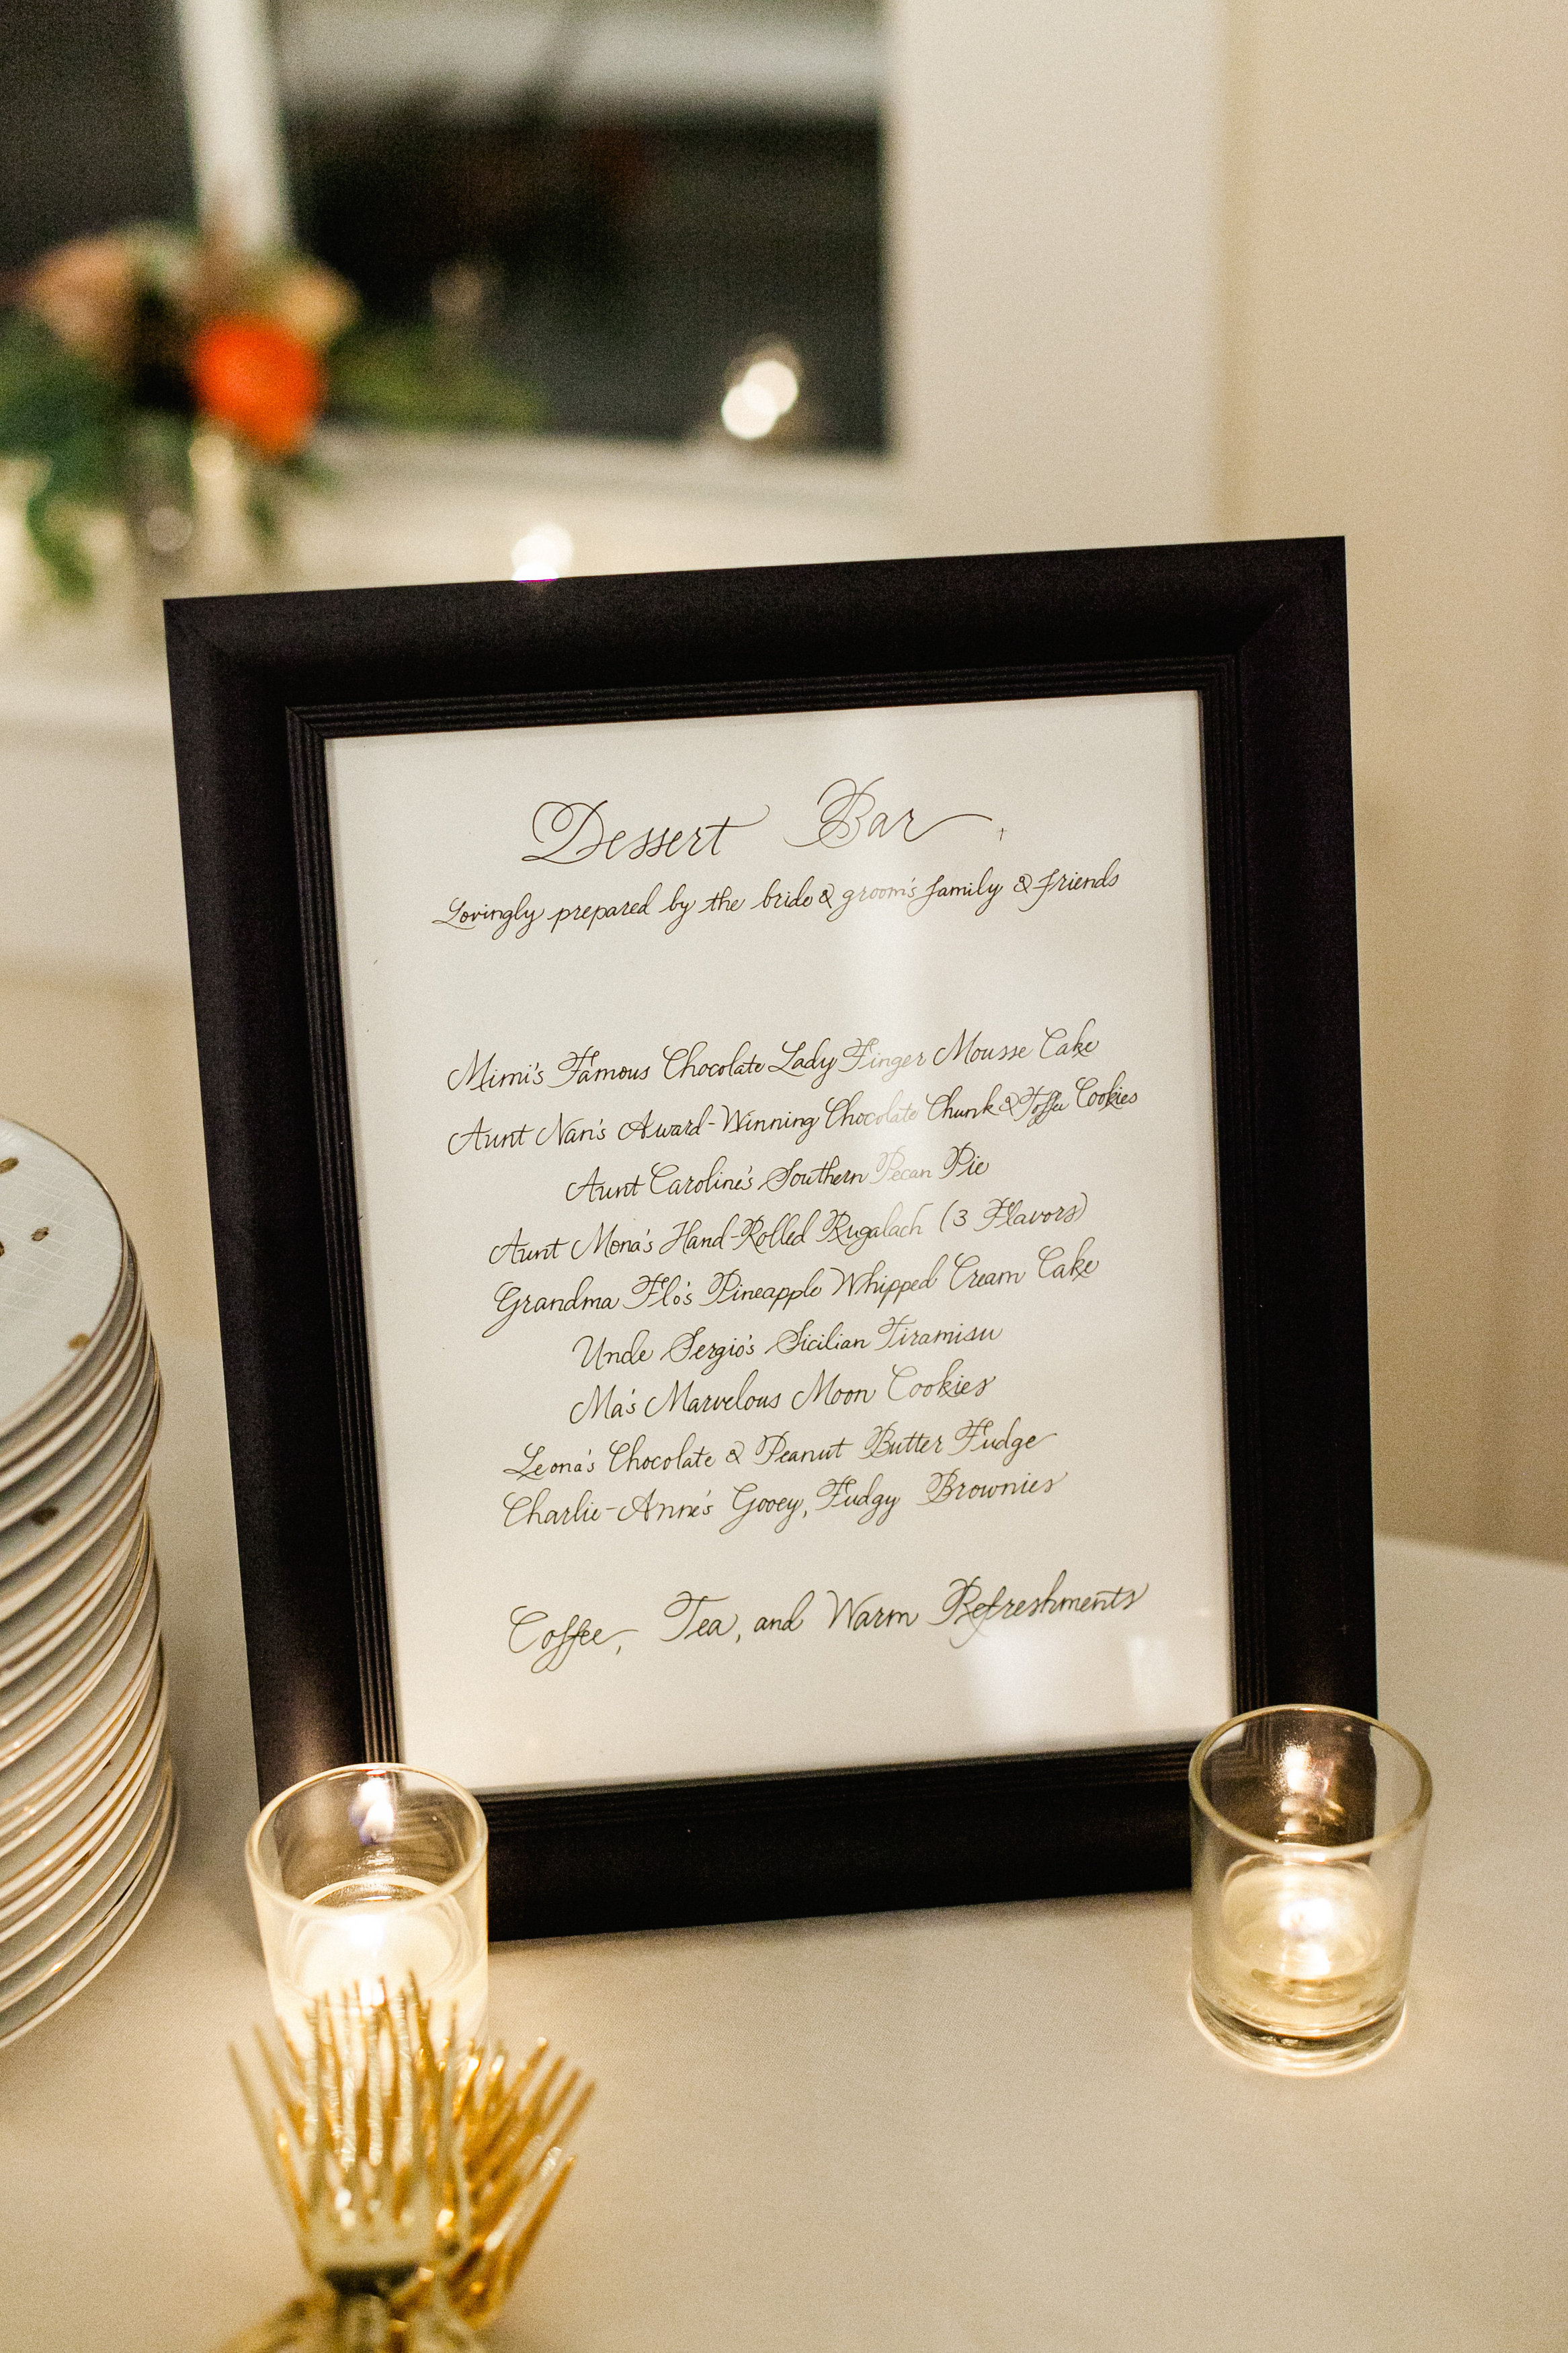 Dessert table sign / Photo by Morgan Trinker Photography